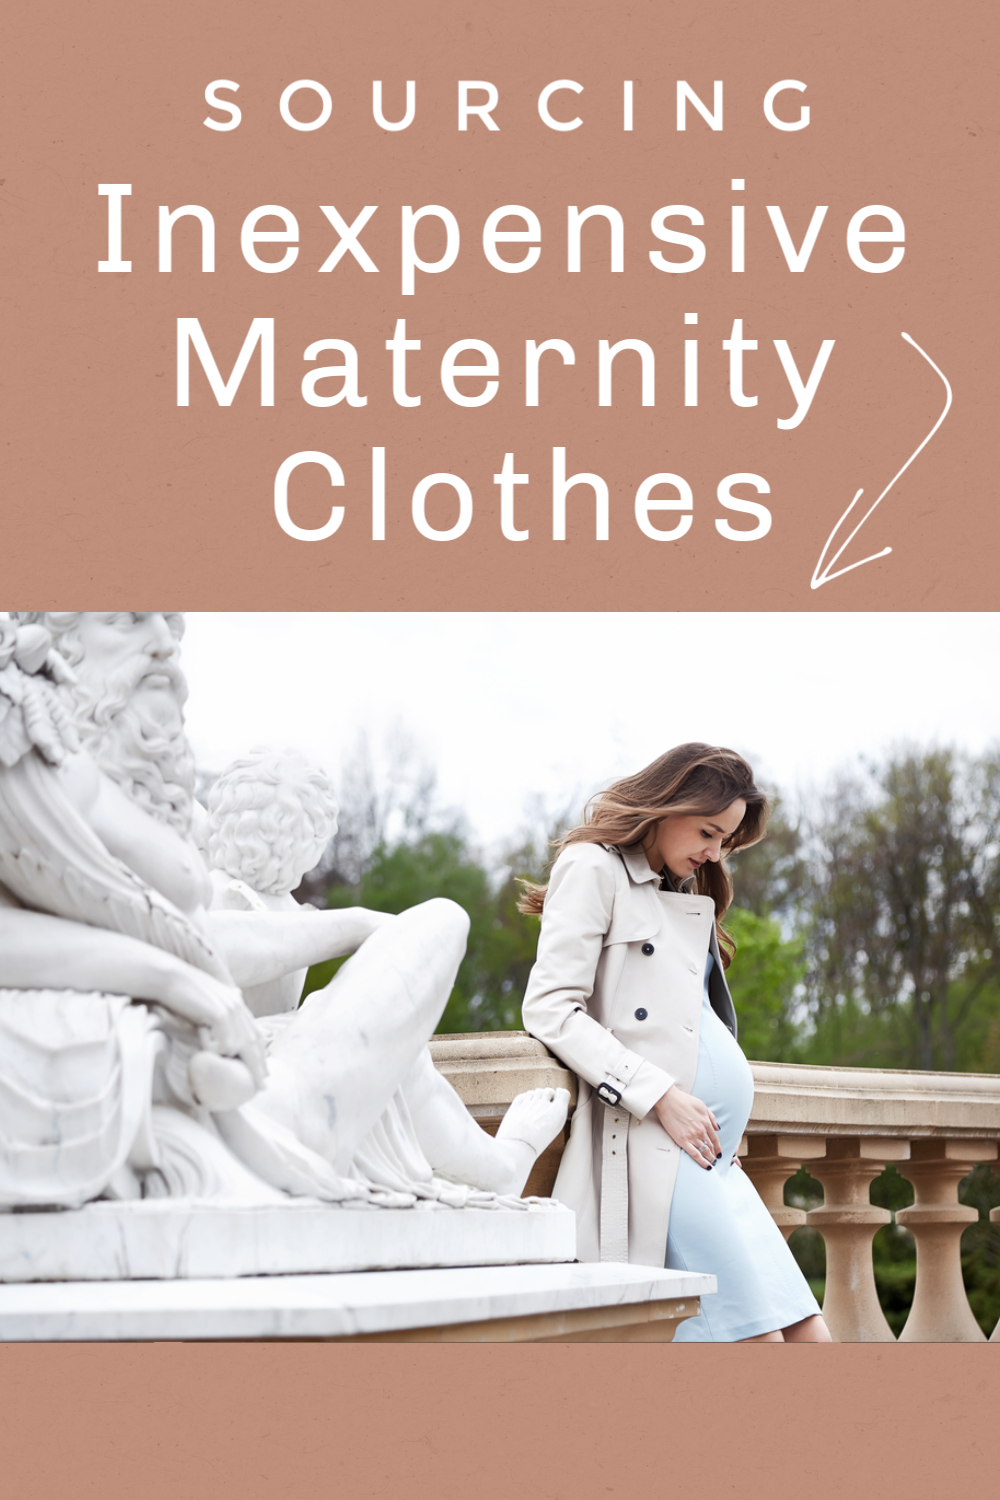 Sourcing Inexpensive Maternity Clothes